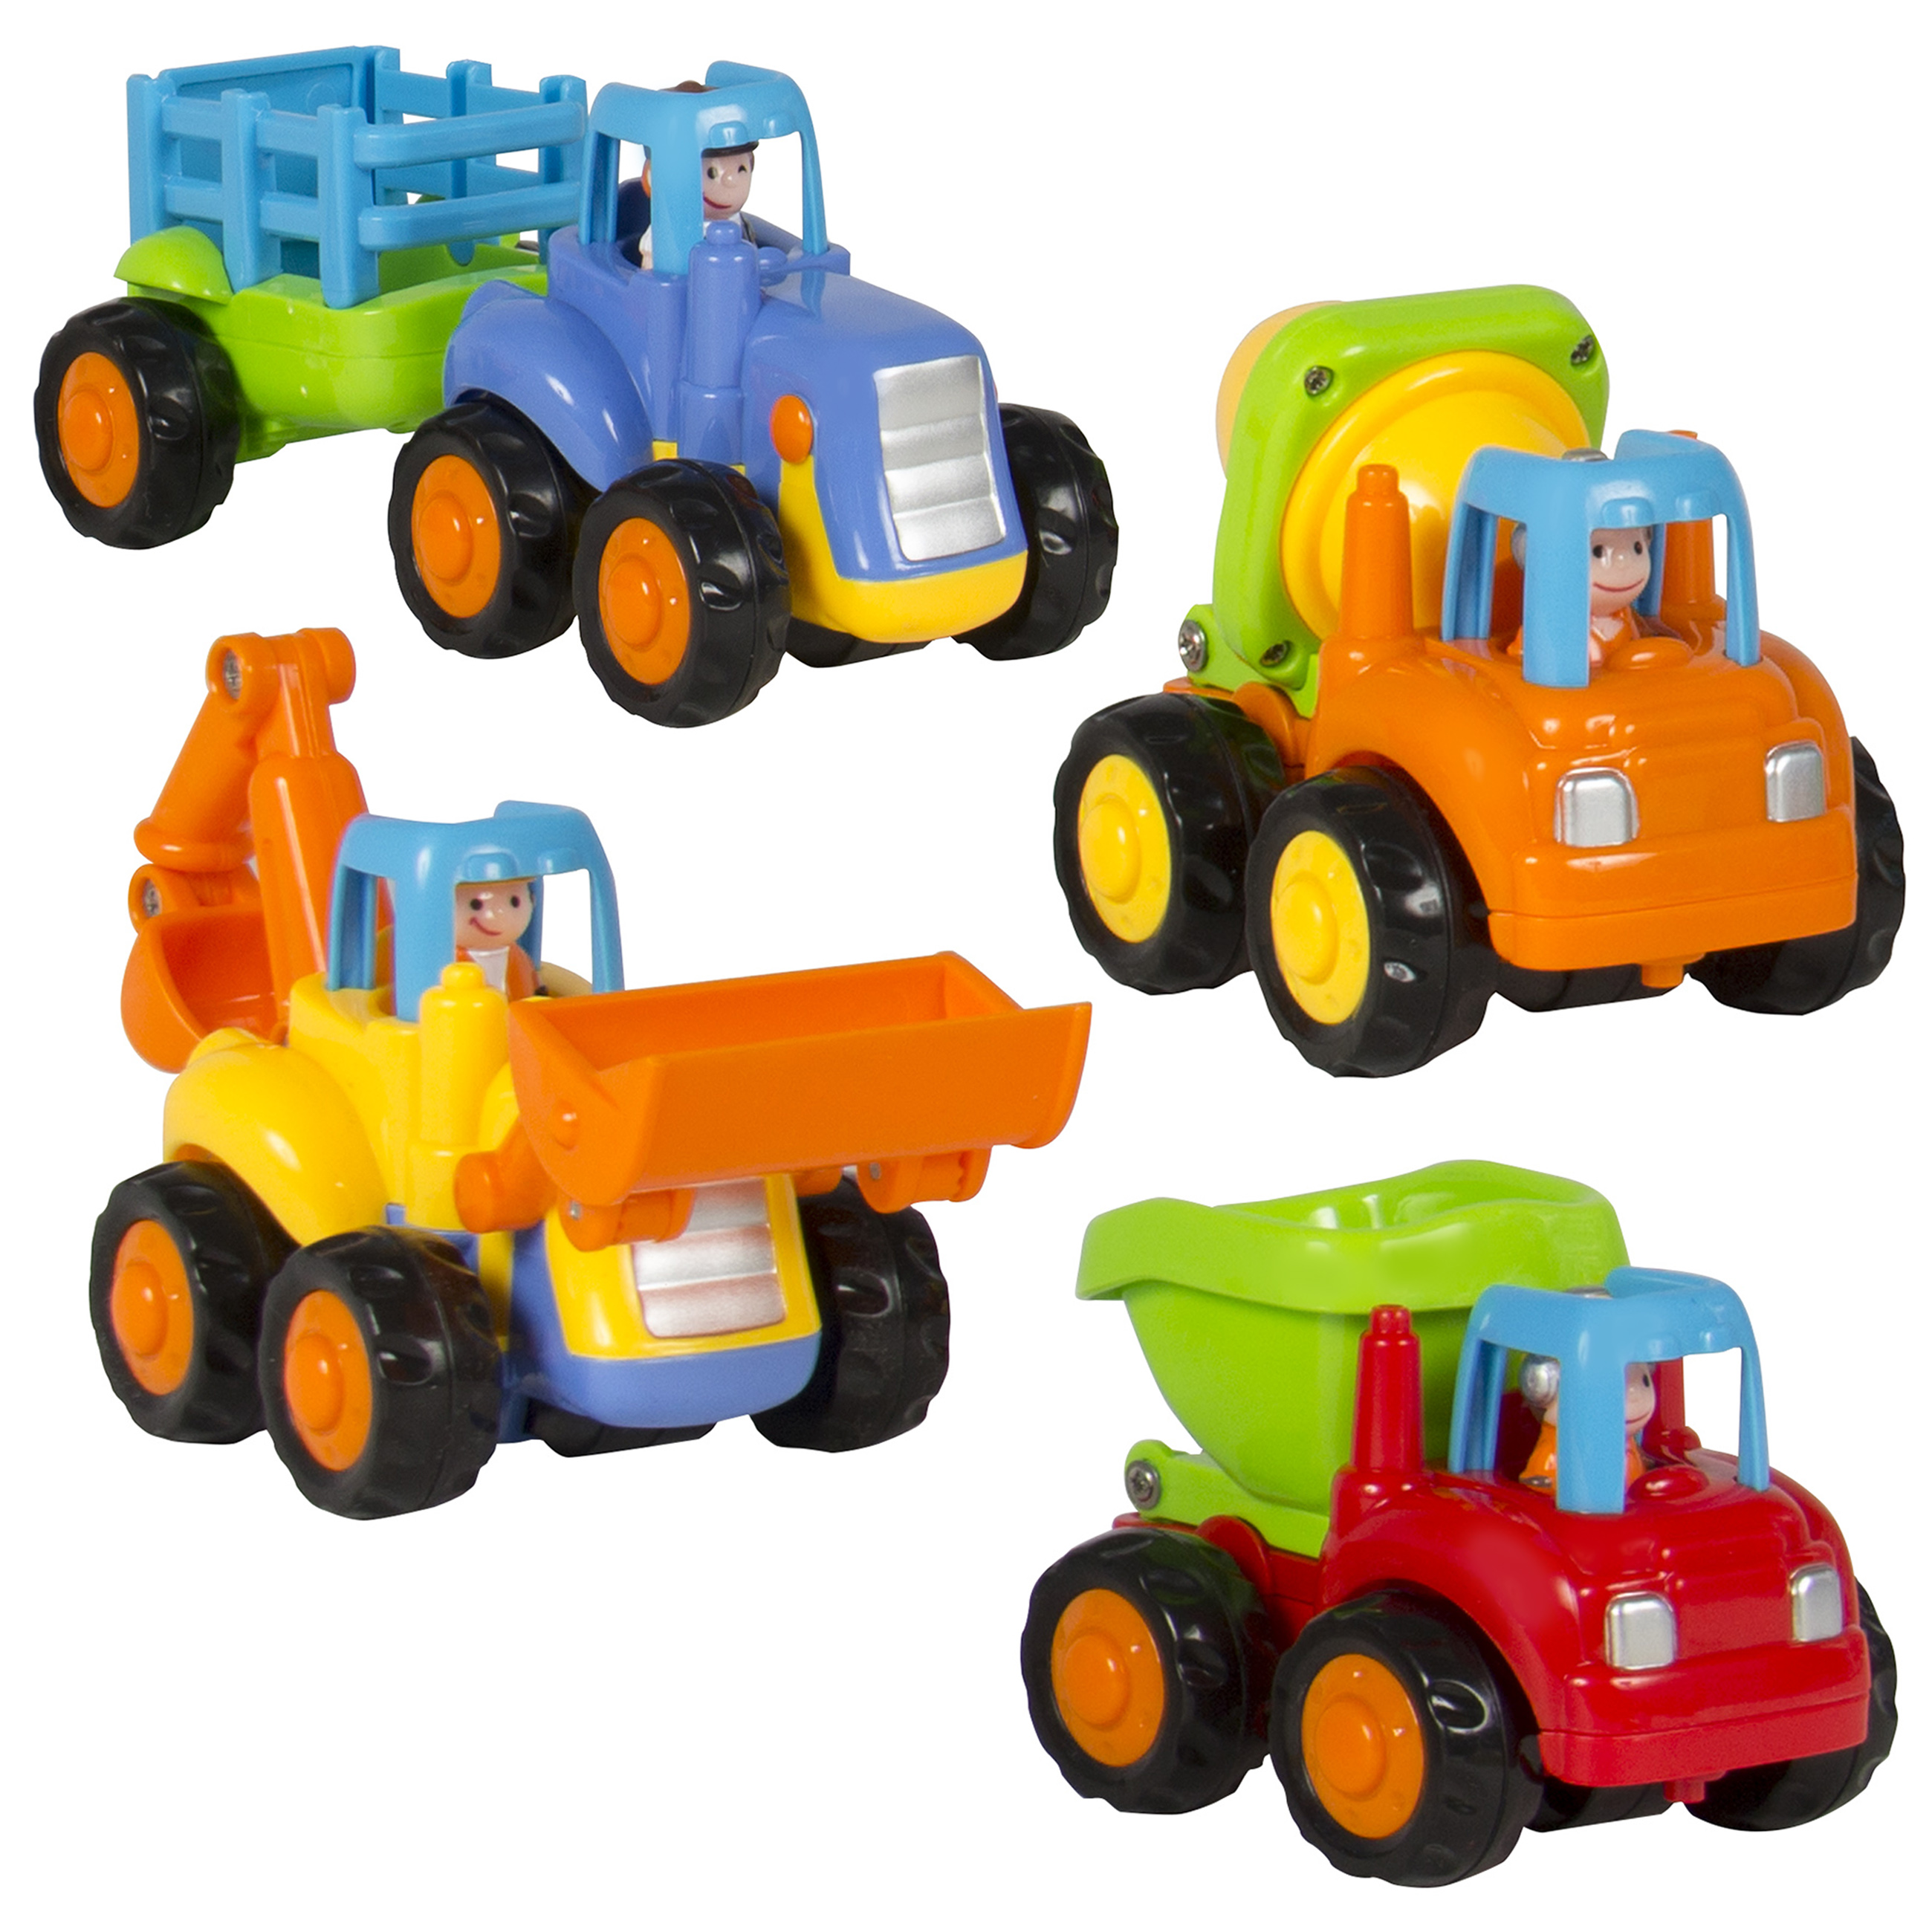 Best Choice Products Set of 4 Push and Go Friction Powered Car Toys,Tractor, Bull Dozer truck, Cement Mixer, Dump truck